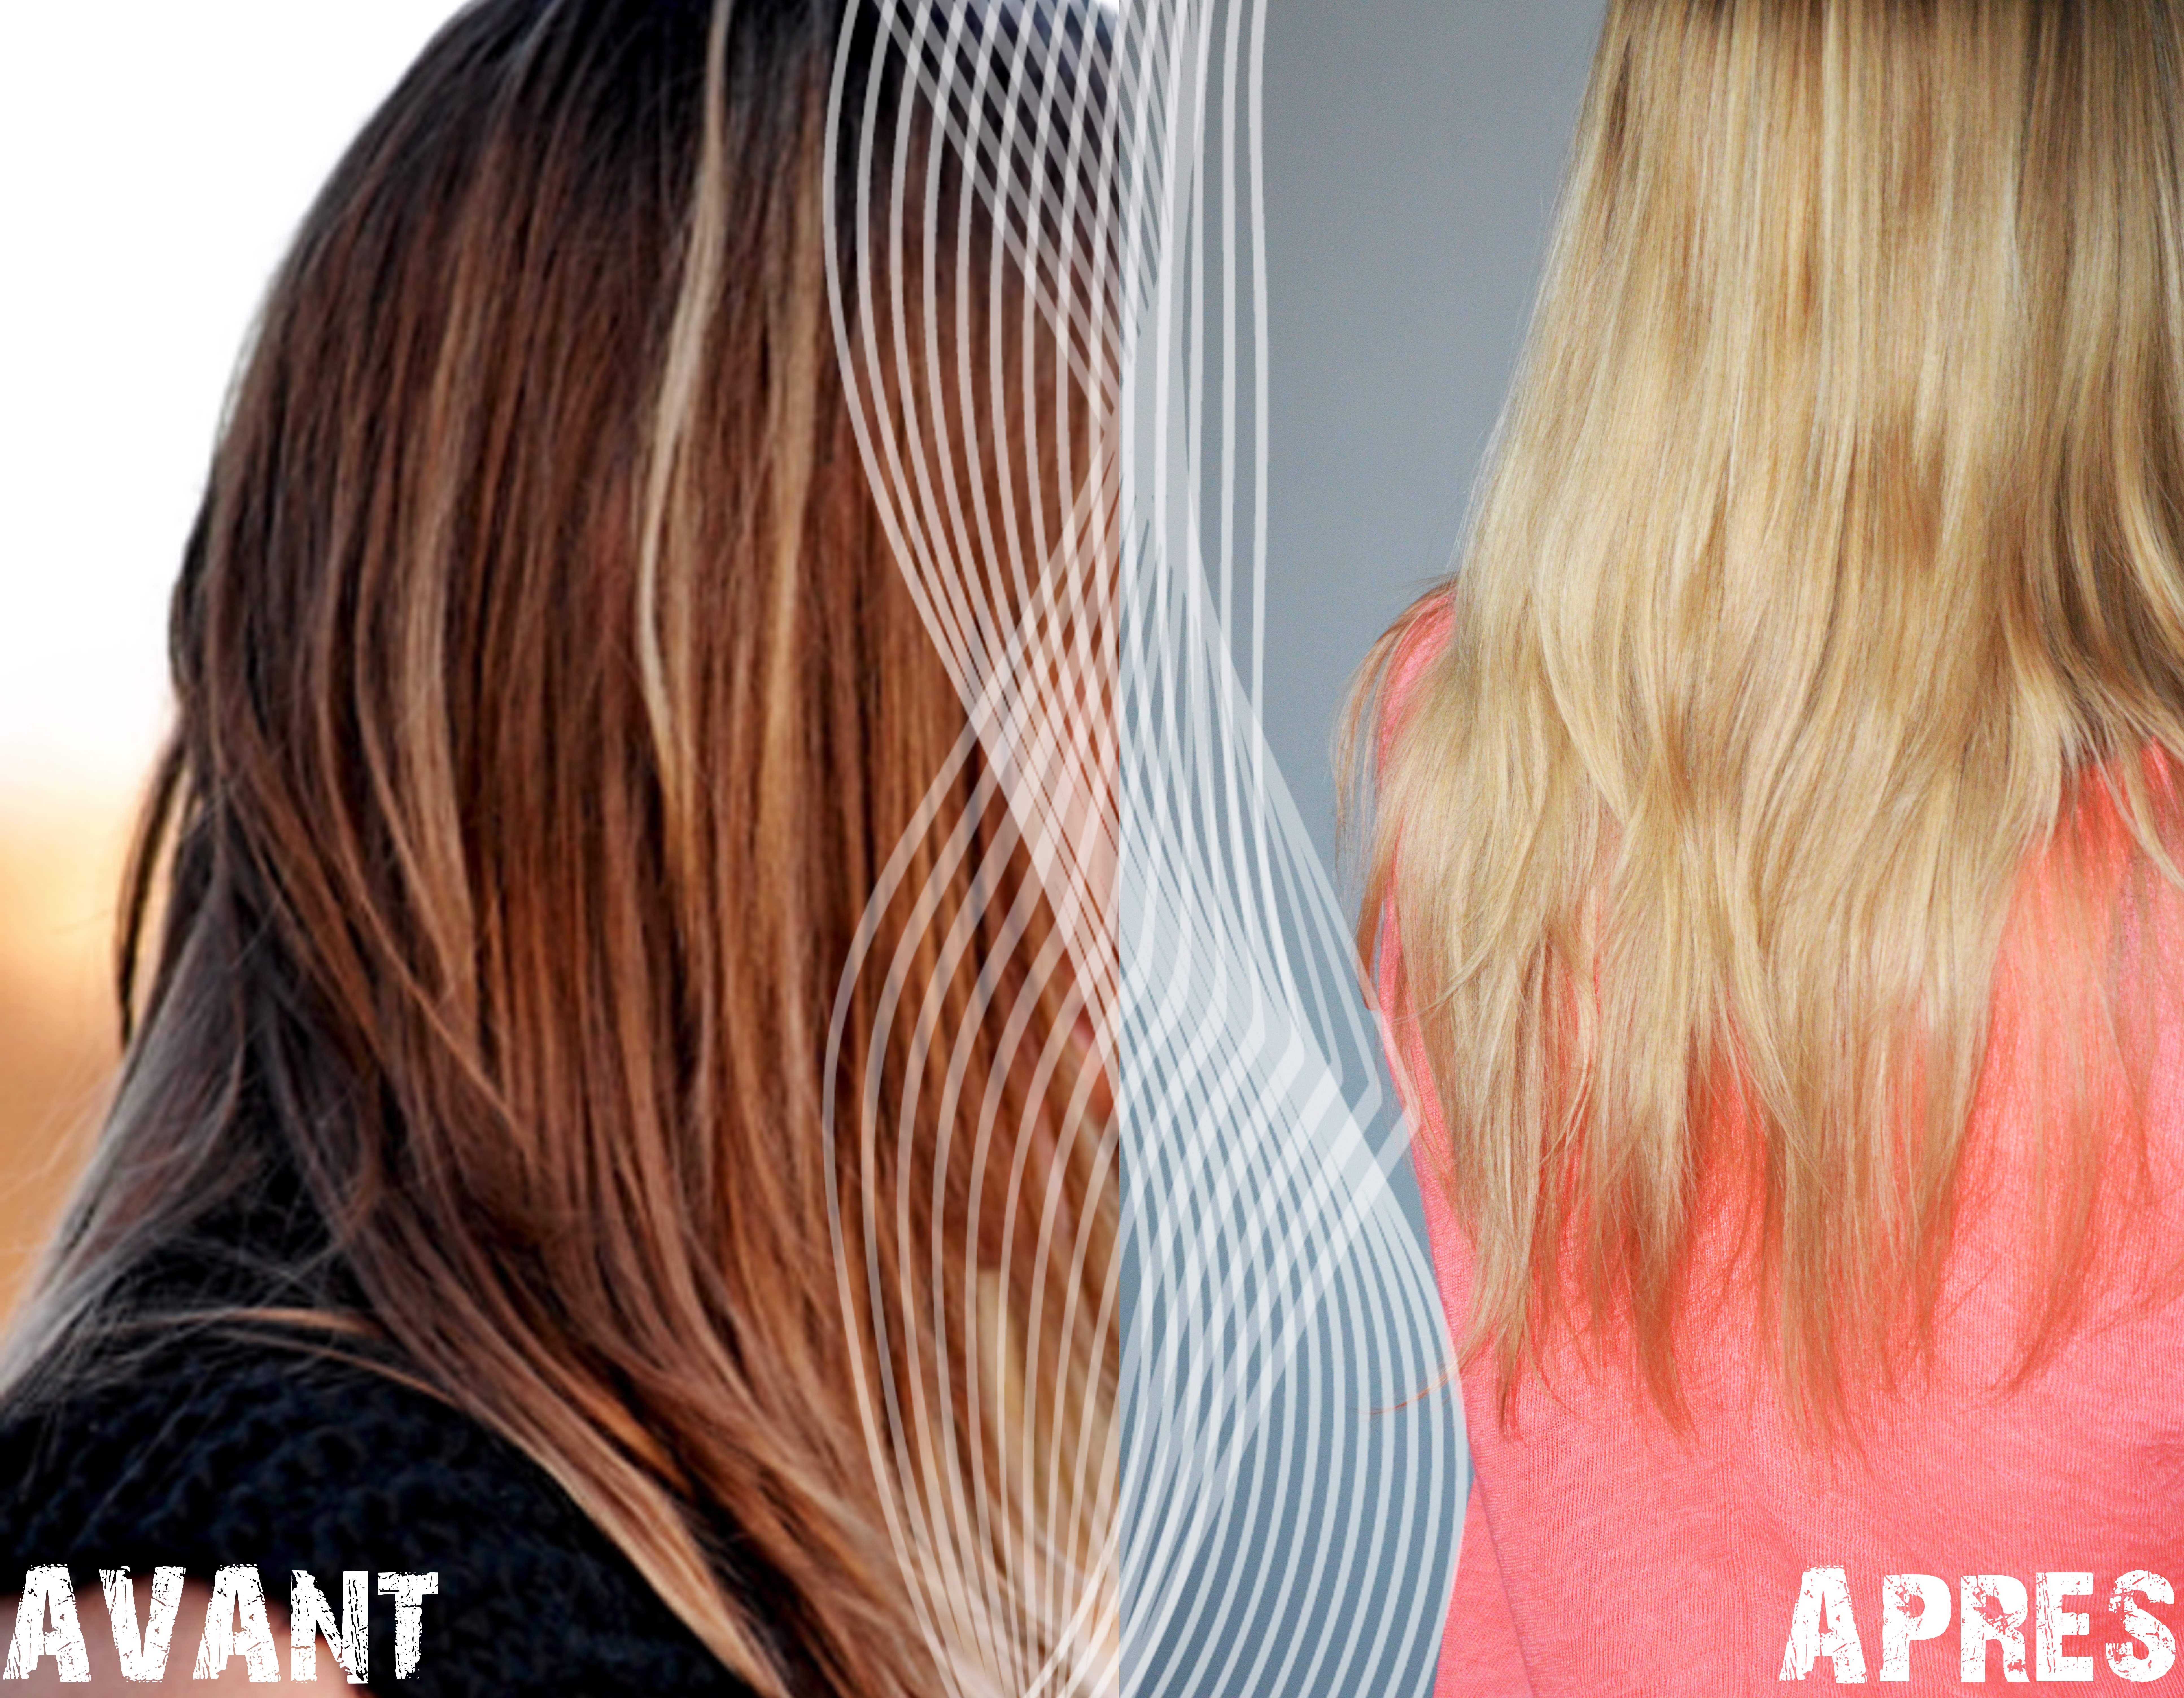 301 moved permanently for Apres shampoing maison